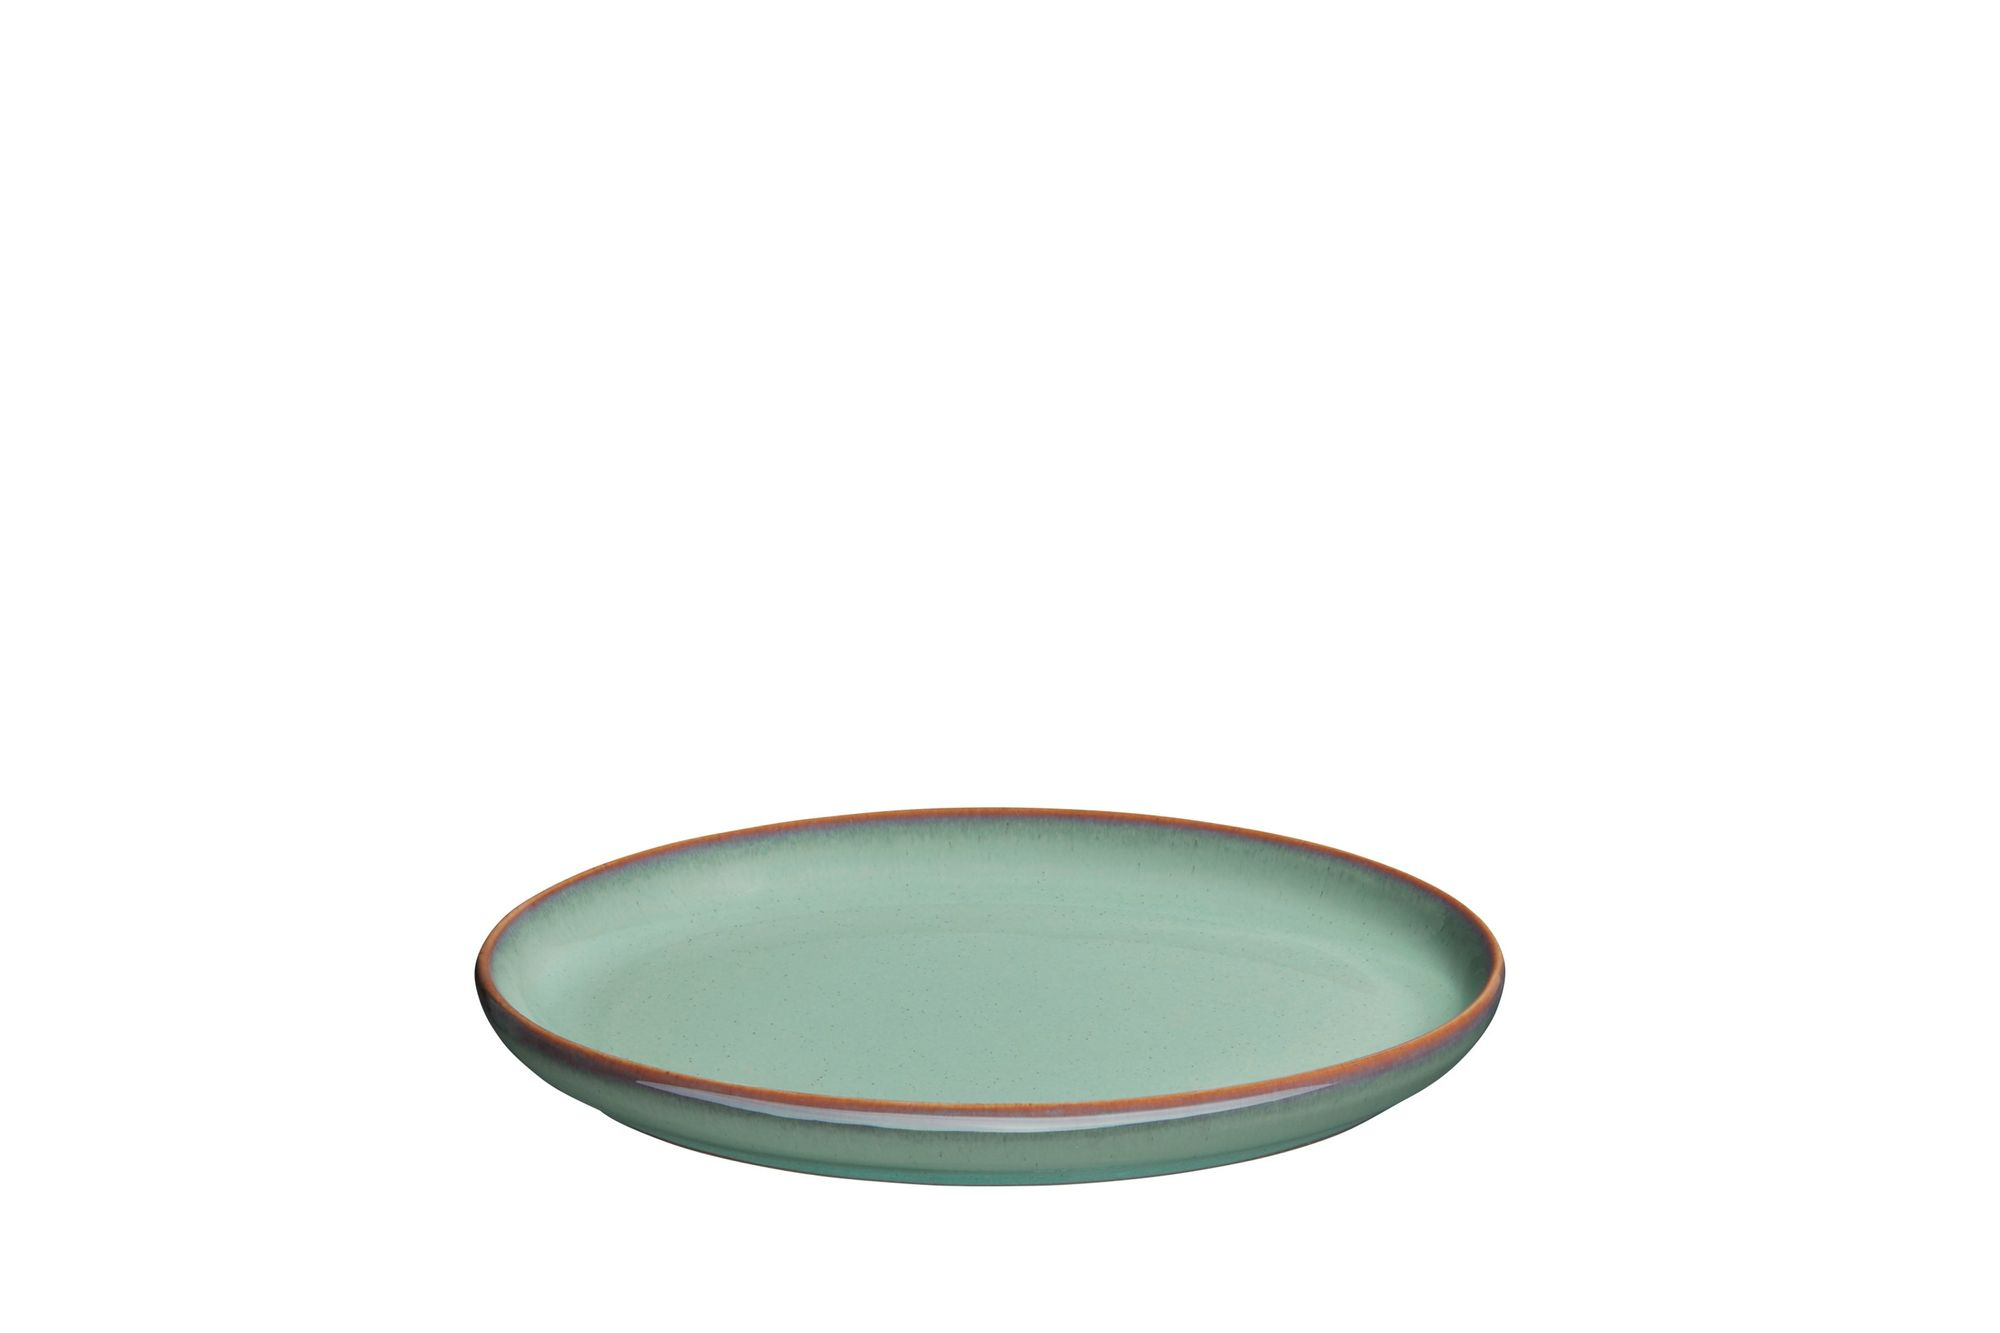 "Denby Regency Green Serving Tray Small Oval Tray 19 x 14"" thumb 2"